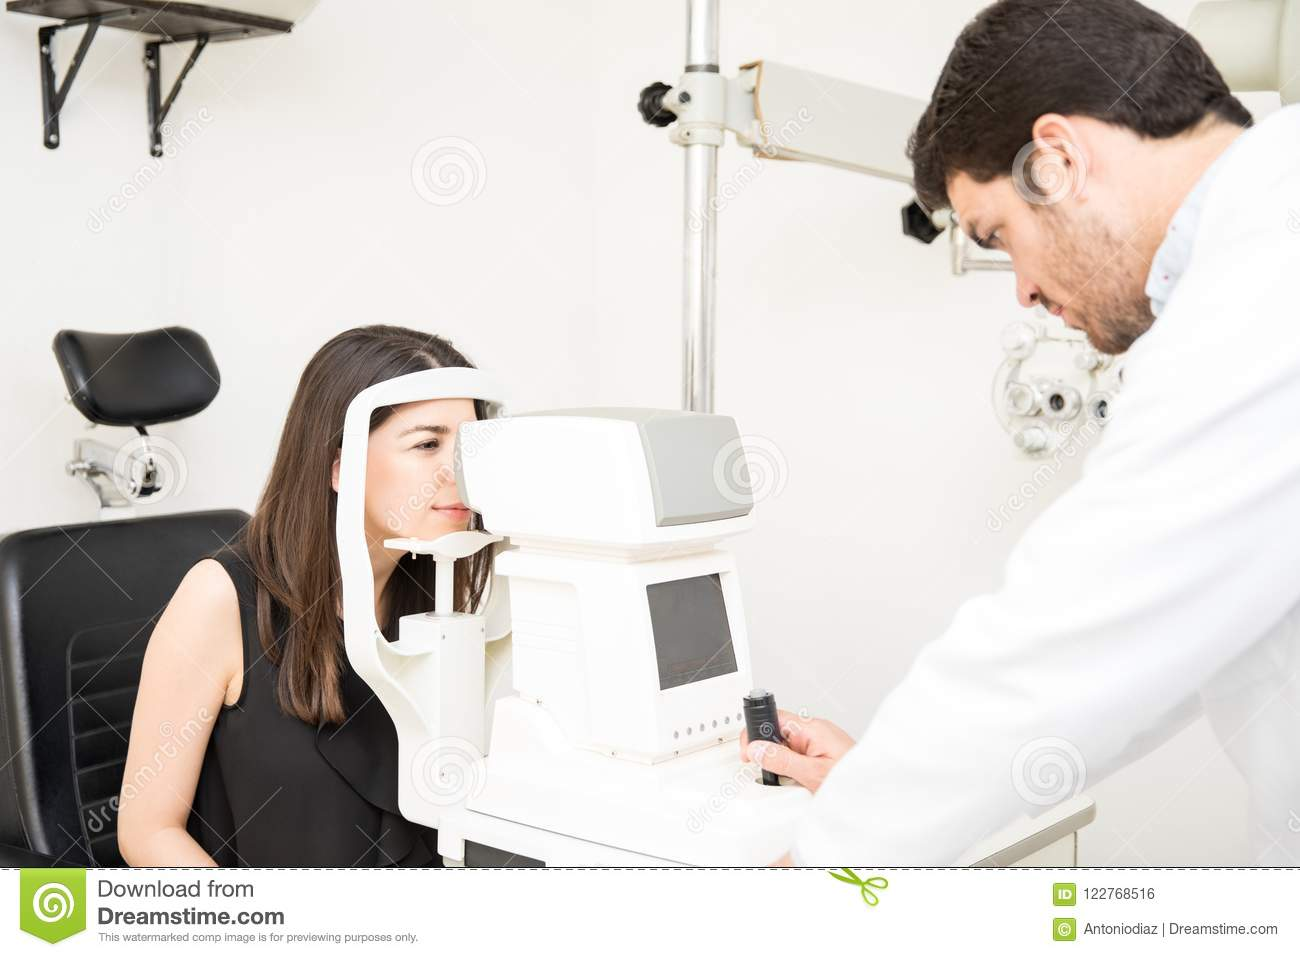 a7cff307e4d Attractive young optician examining women patients eye pressure with  tonometer